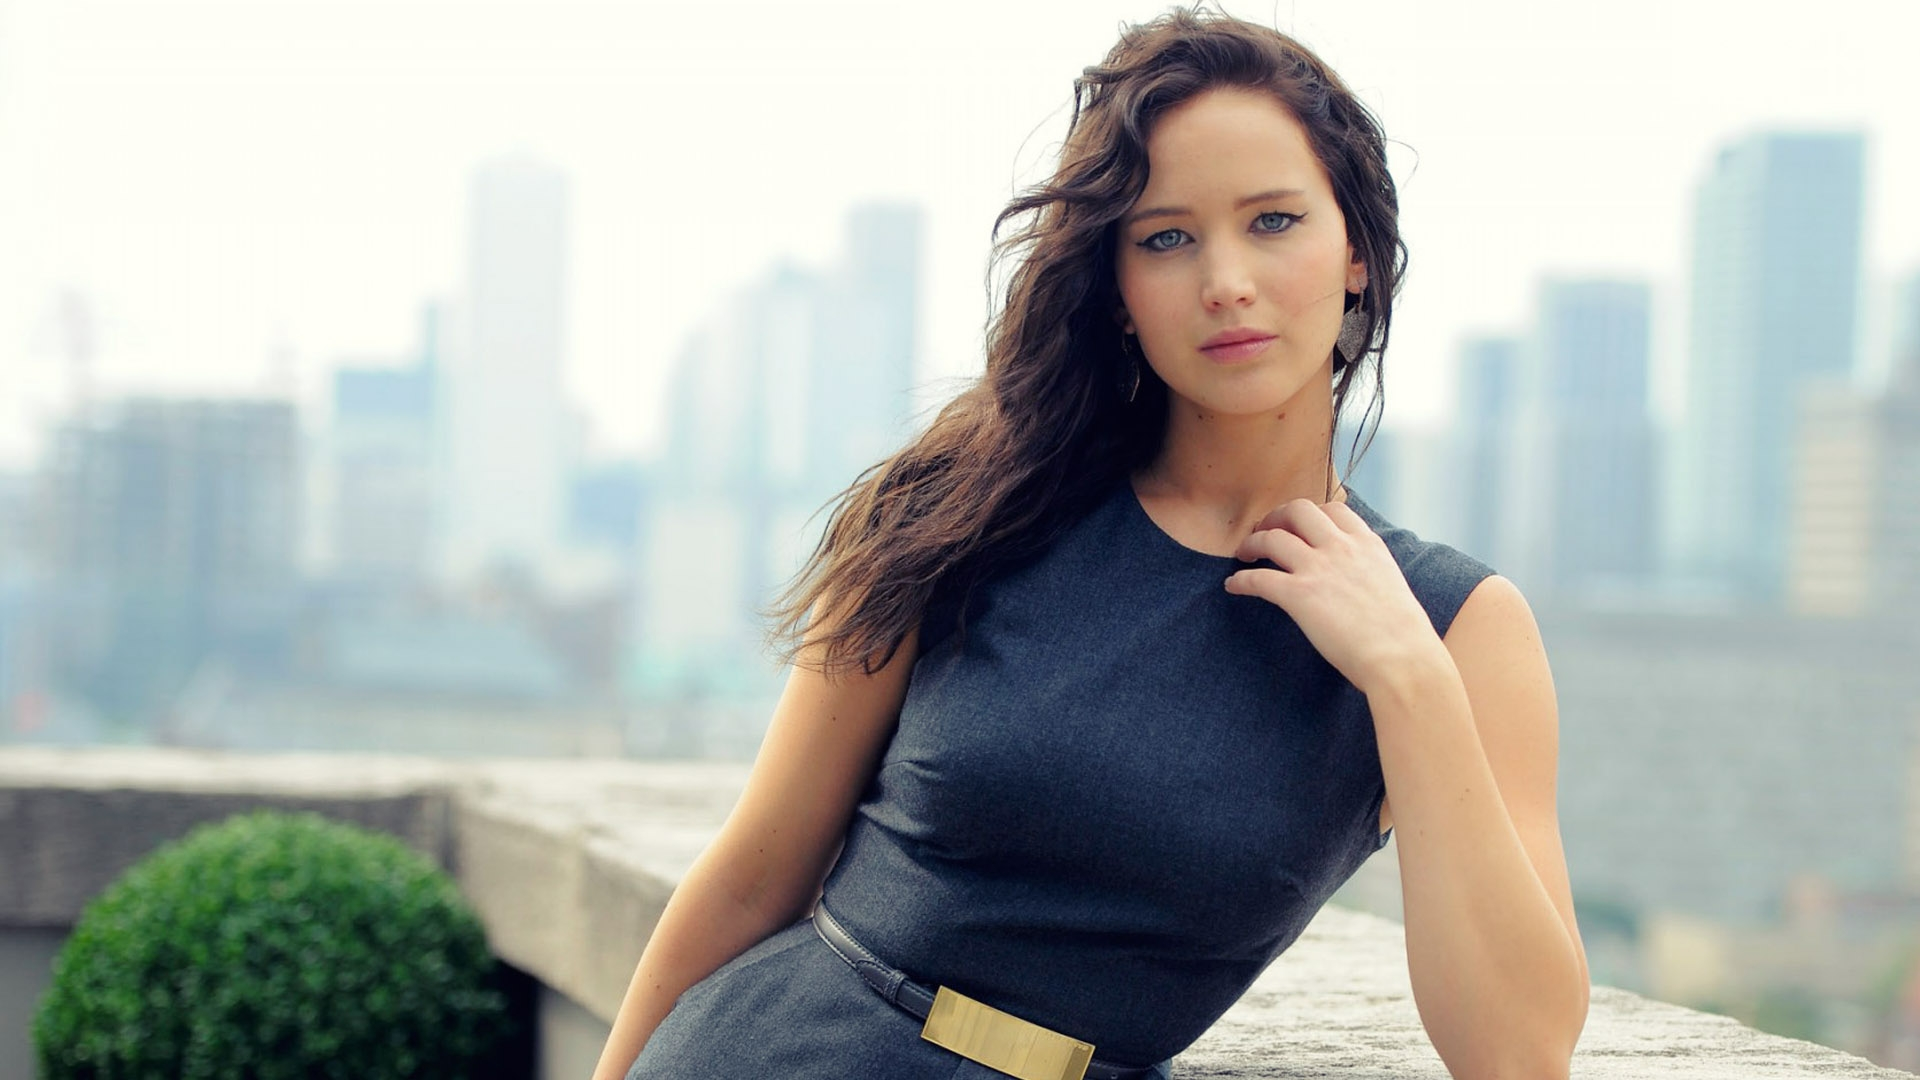 Jennifer Lawrence 4 Cool Hd Wallpaper